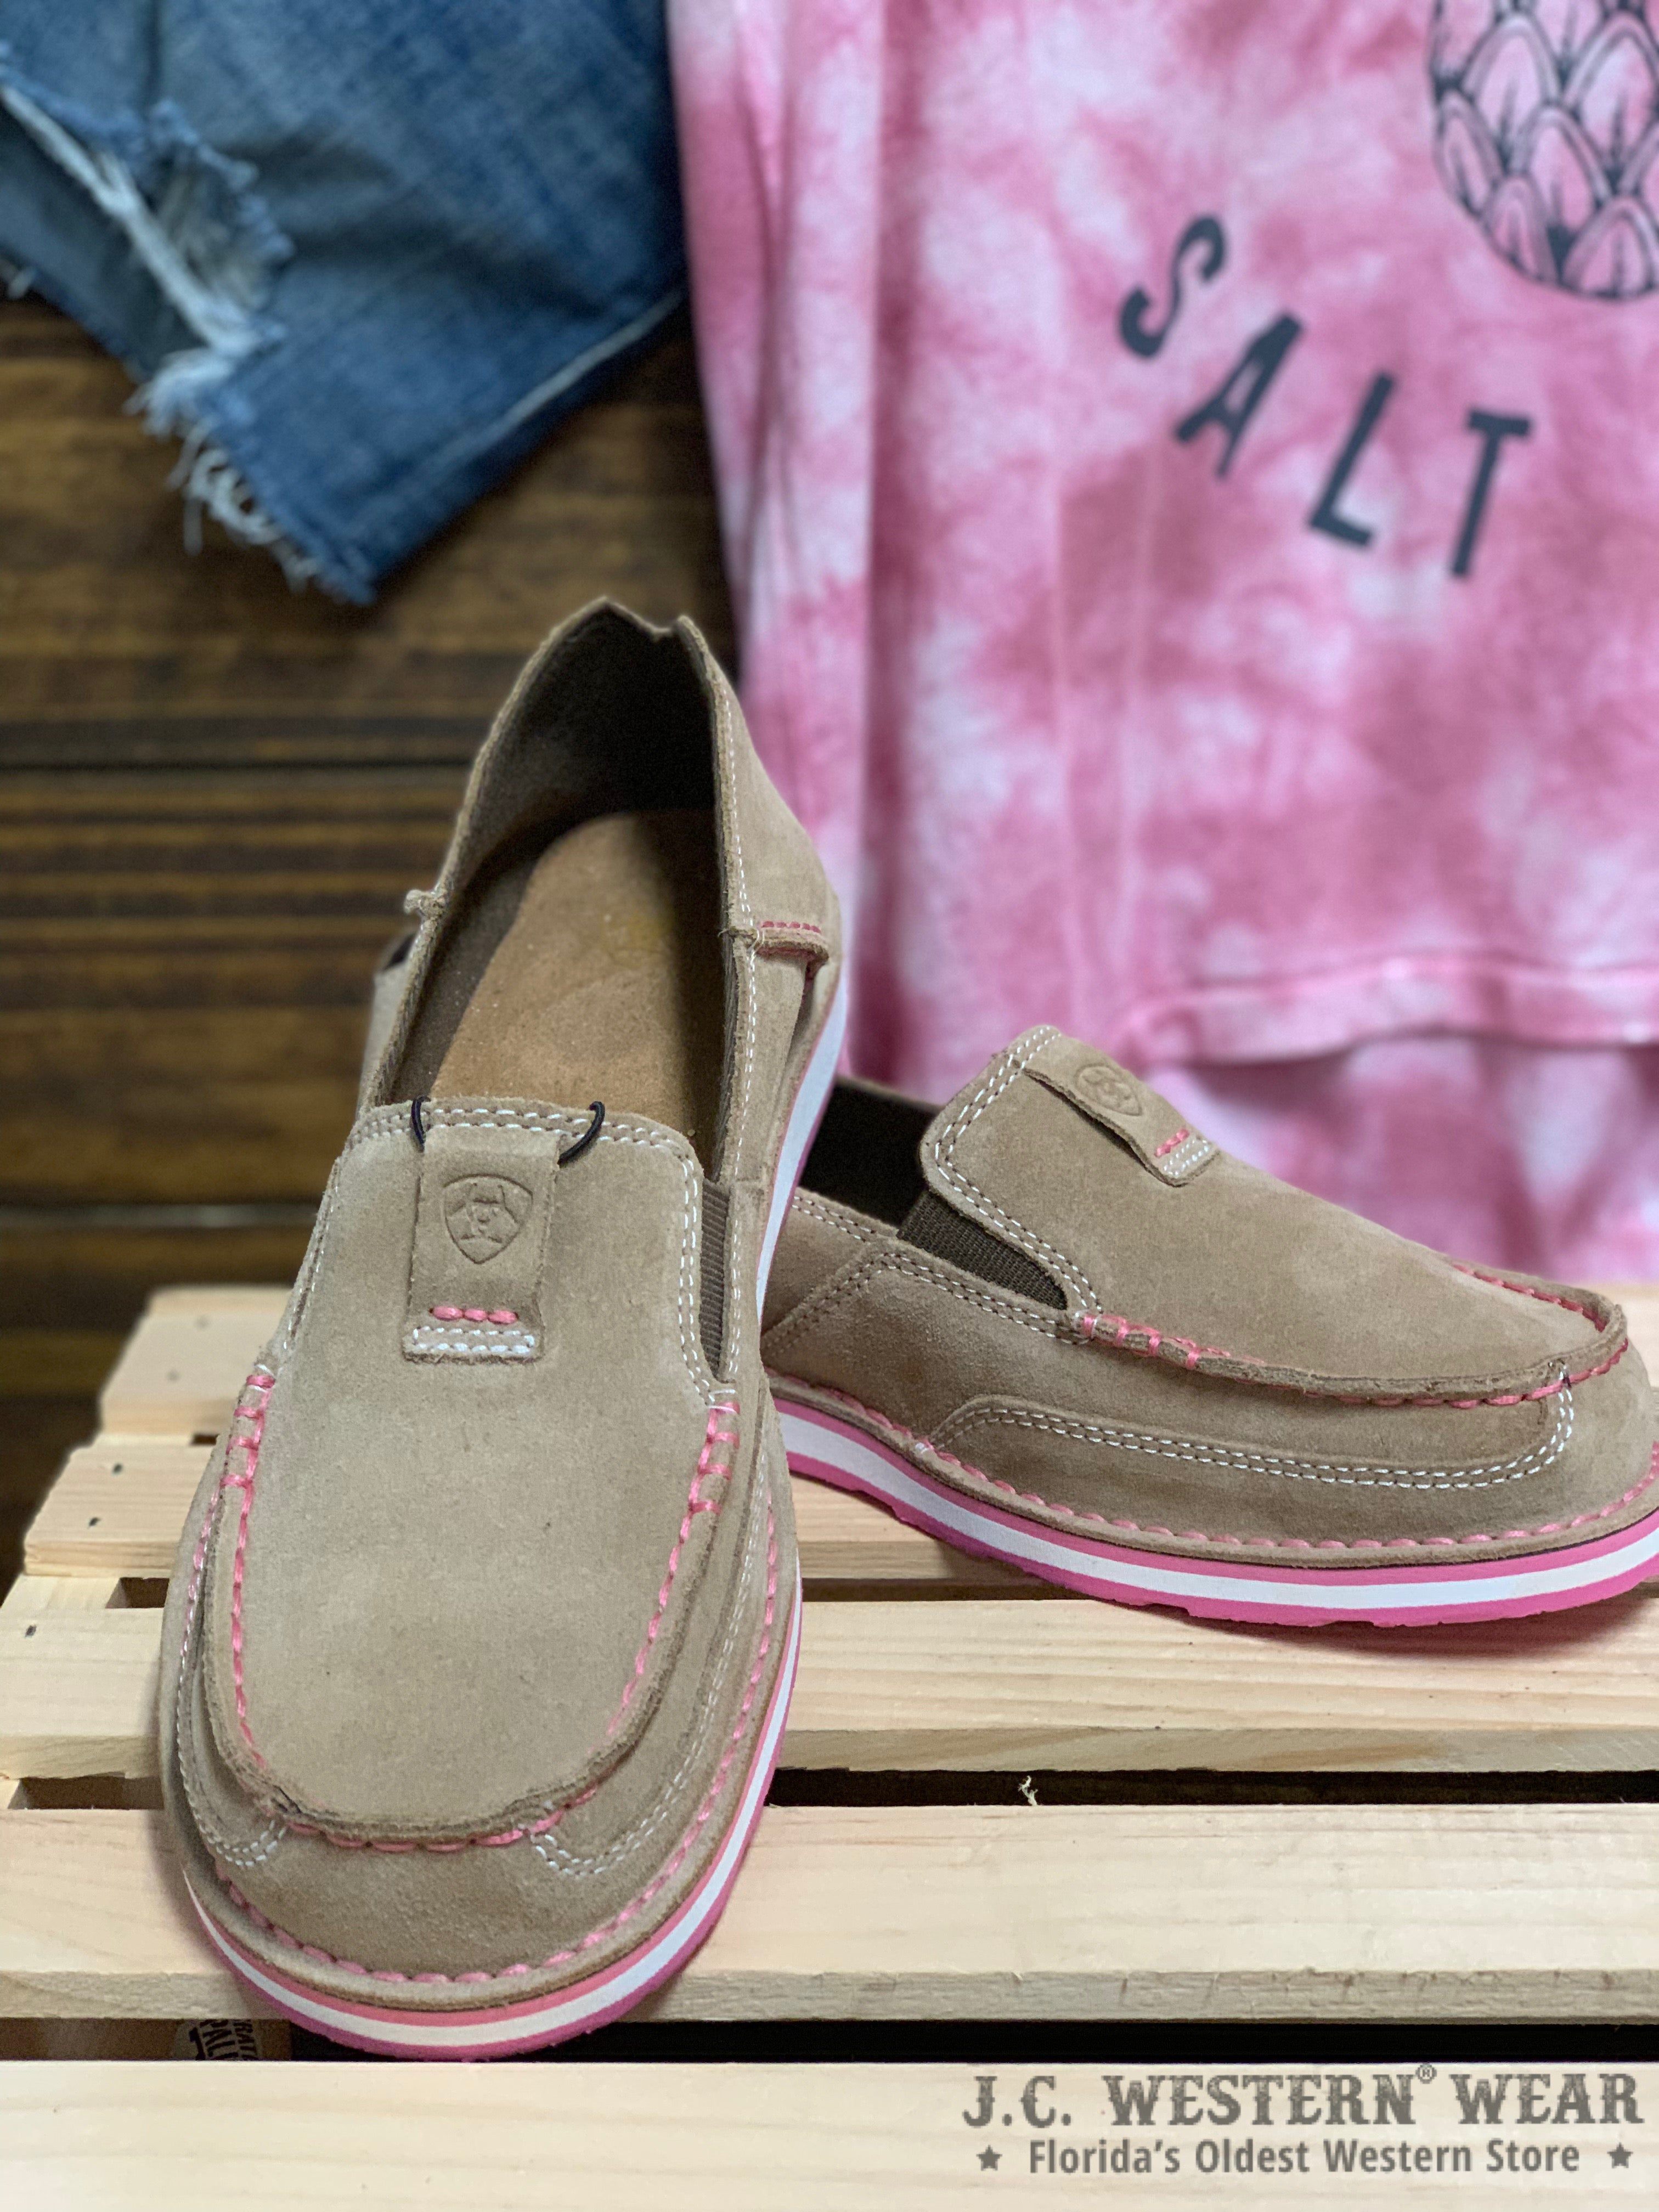 Cruise Into Spring With these Ariat Slip-On Sneakers